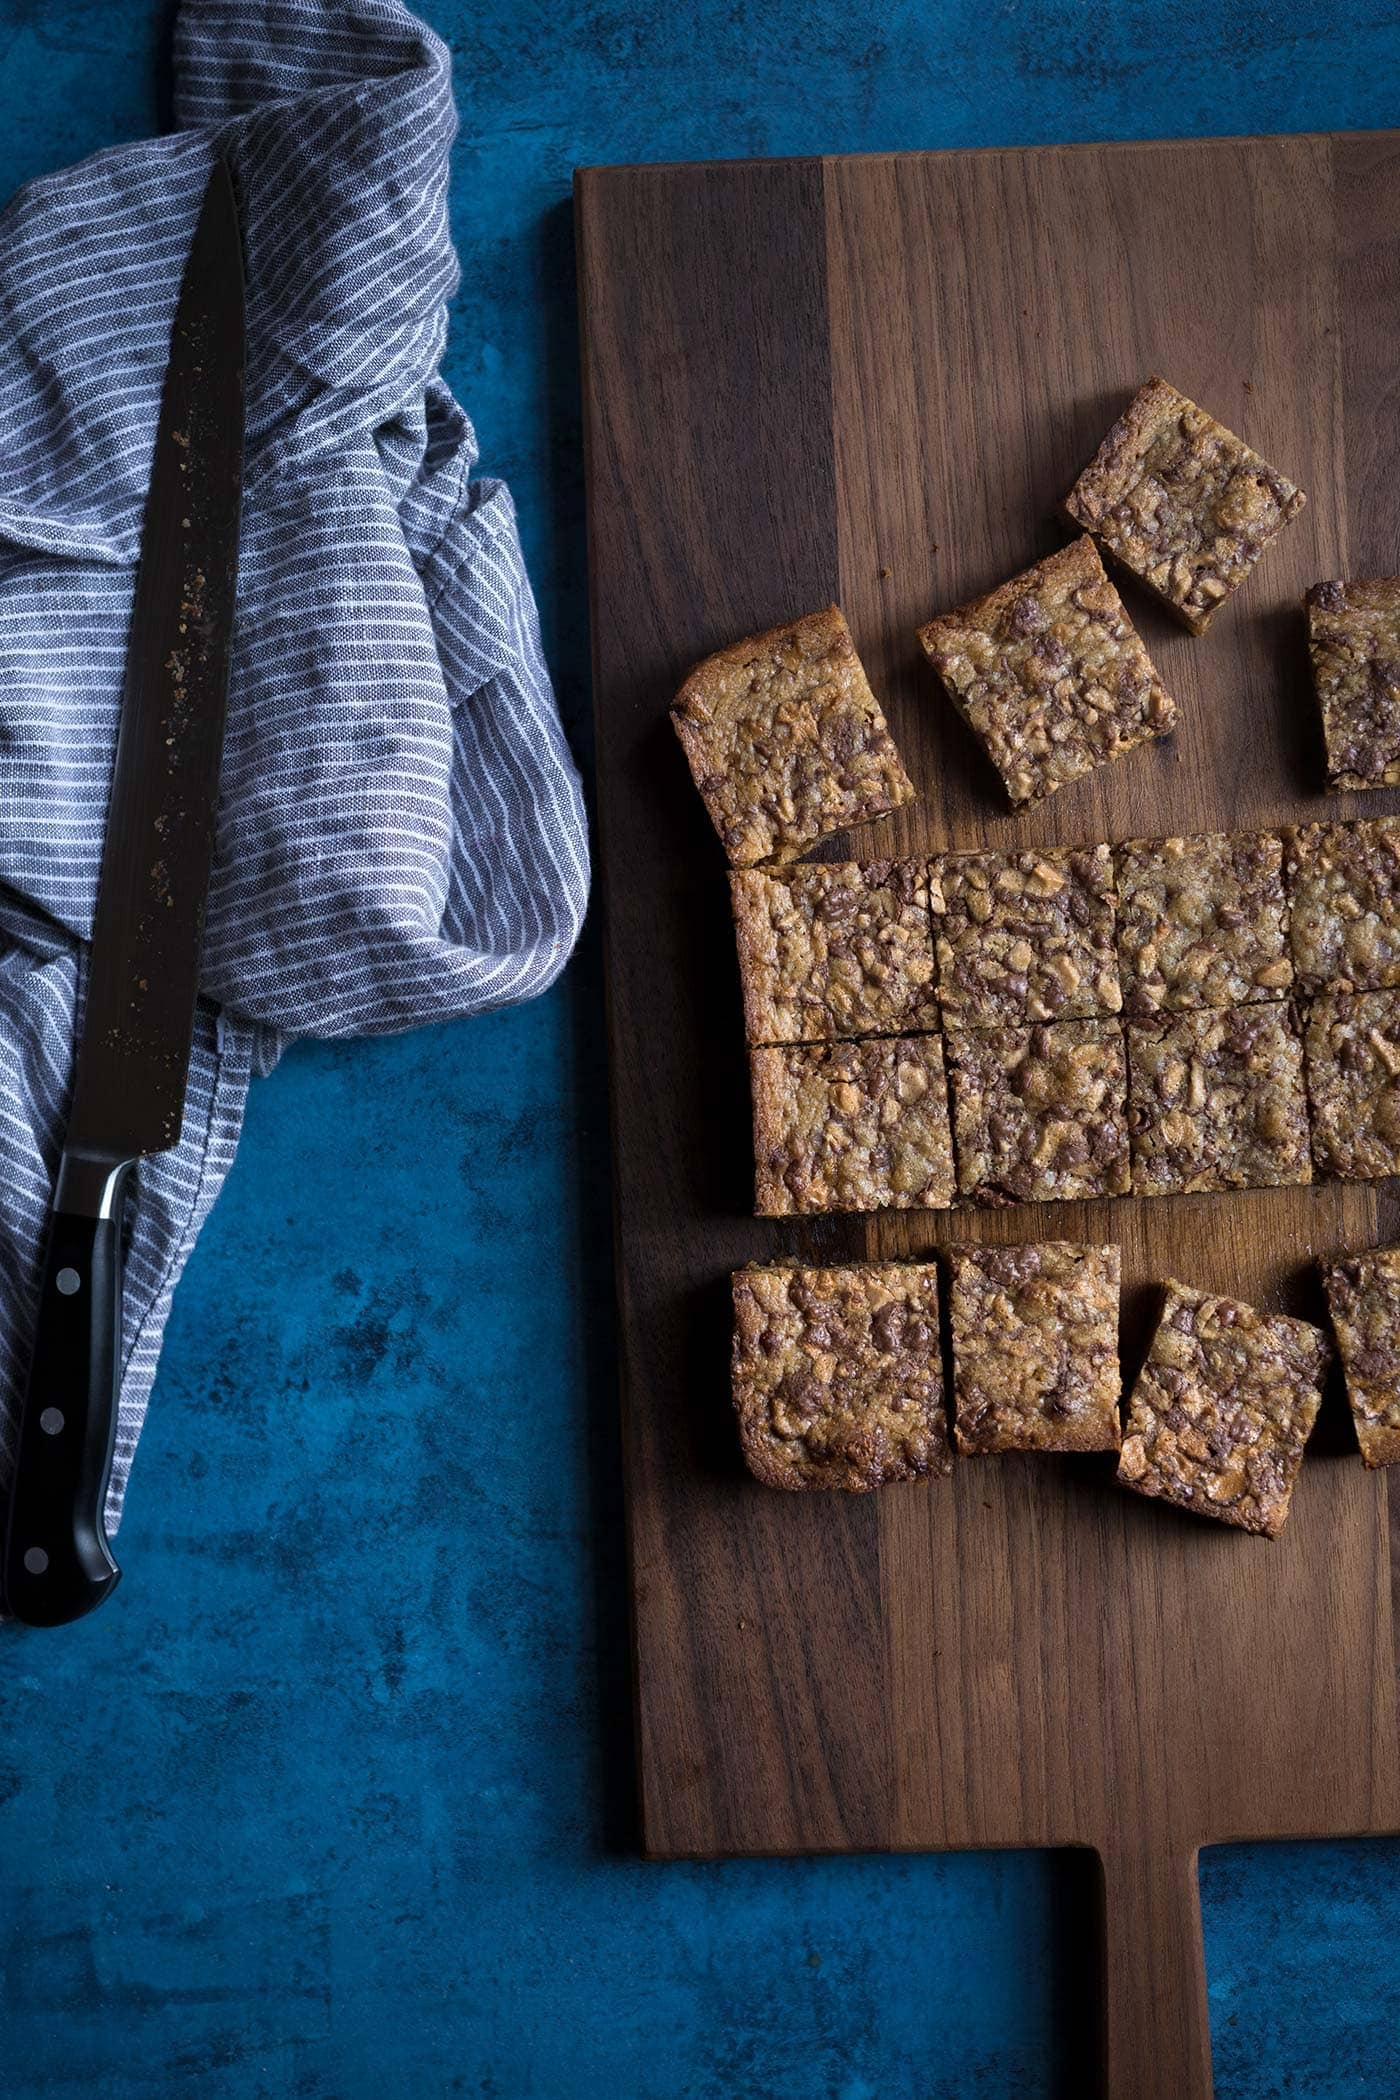 These Malted Milk Ball Blondies come together in 30 minutes and are truly addicting! Get the easy-to-follow recipe from Savory Simple.